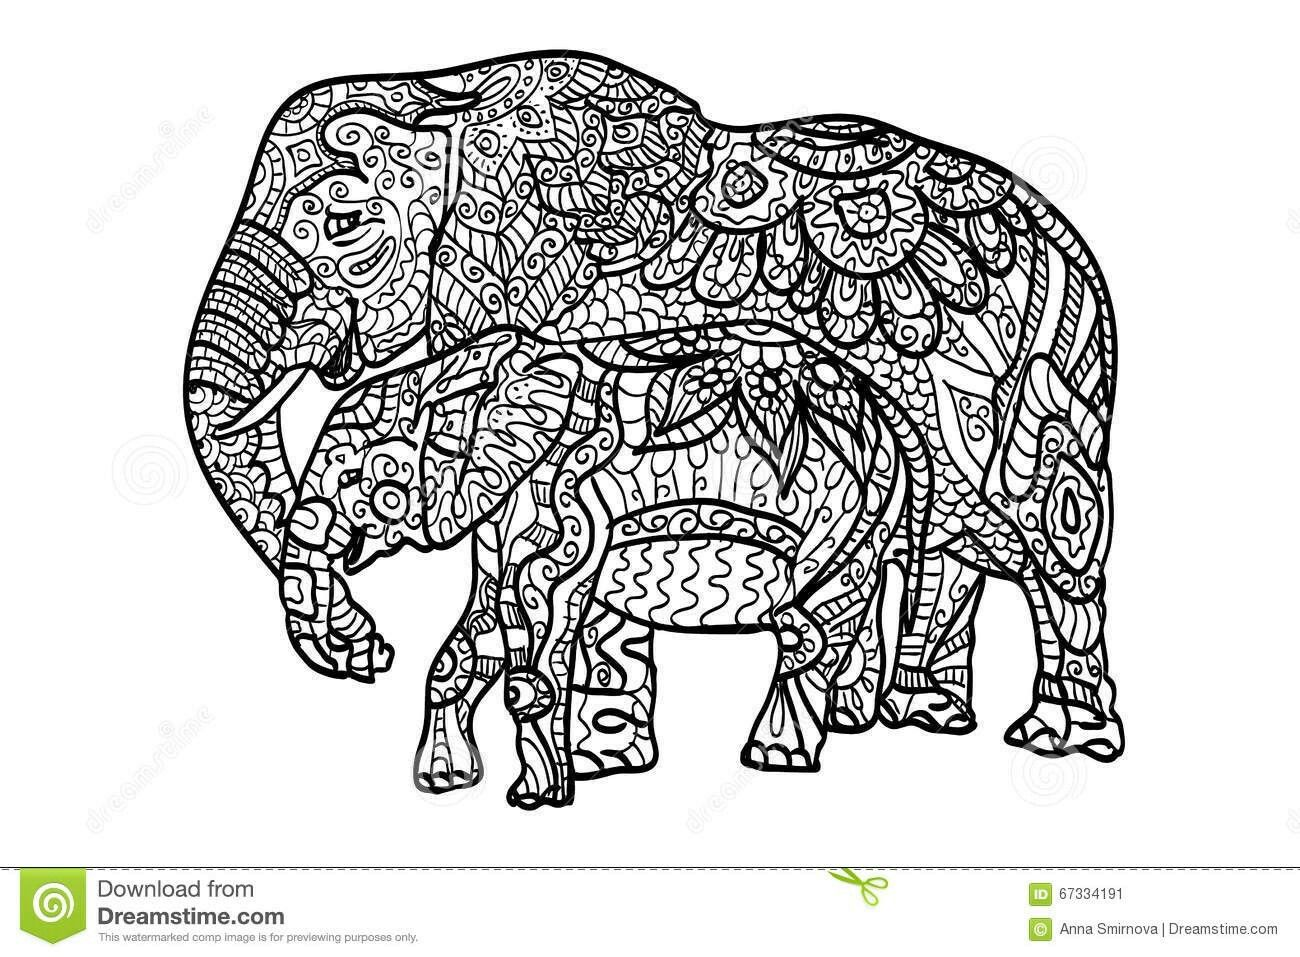 Pin by Elisabeth Quisenberry on Coloring: Elephants | Pinterest